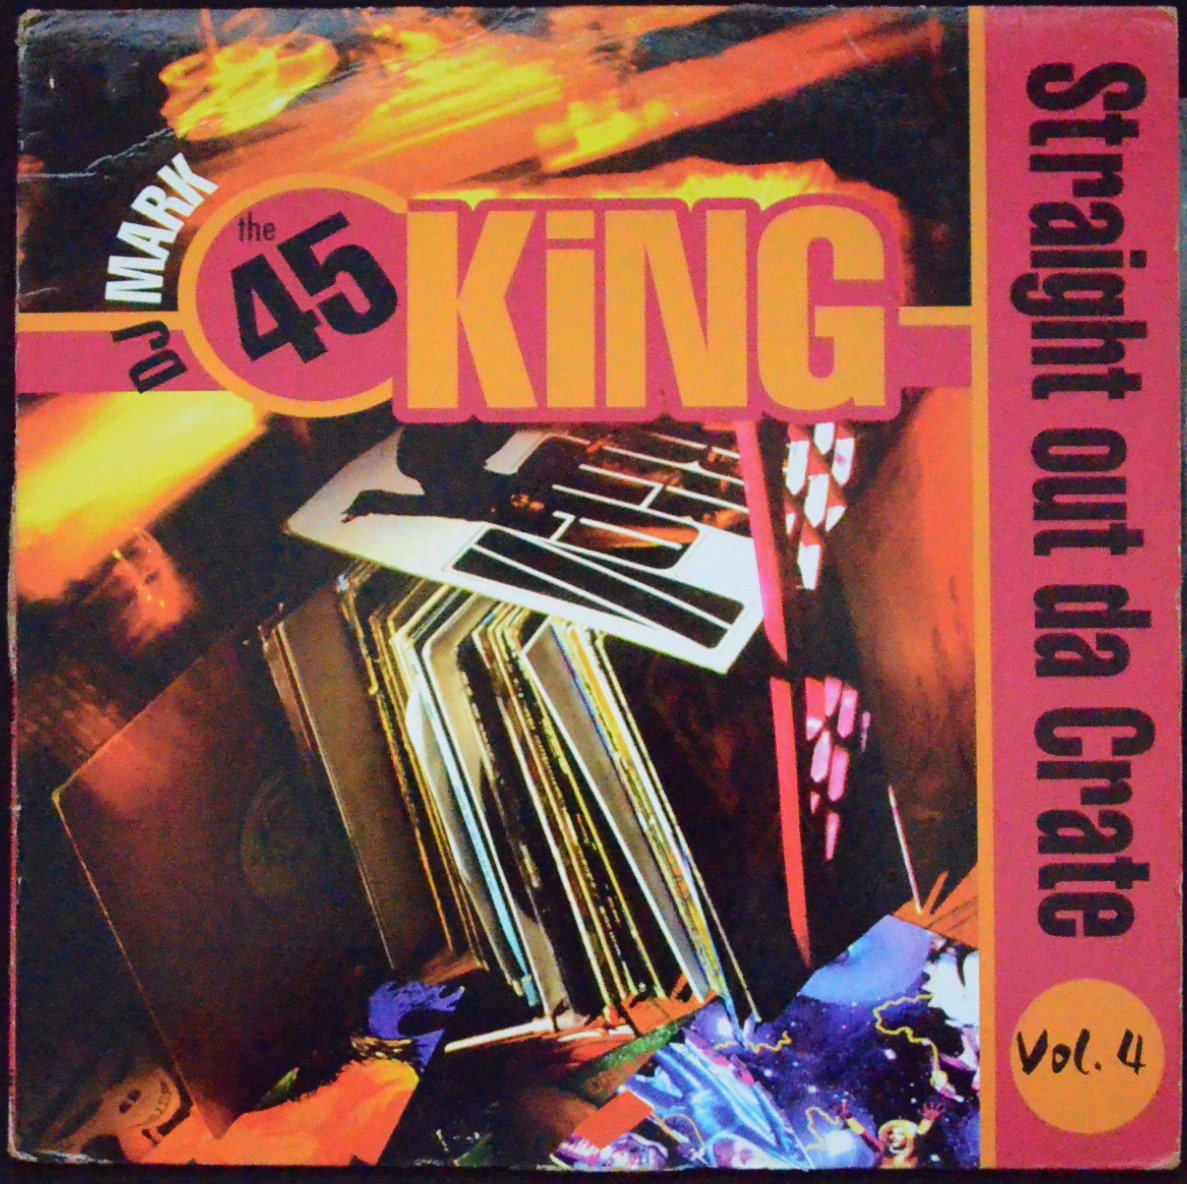 DJ MARK: THE 45 KING / STRAIGHT OUT DA CRATE VOLUME 4 (1LP)